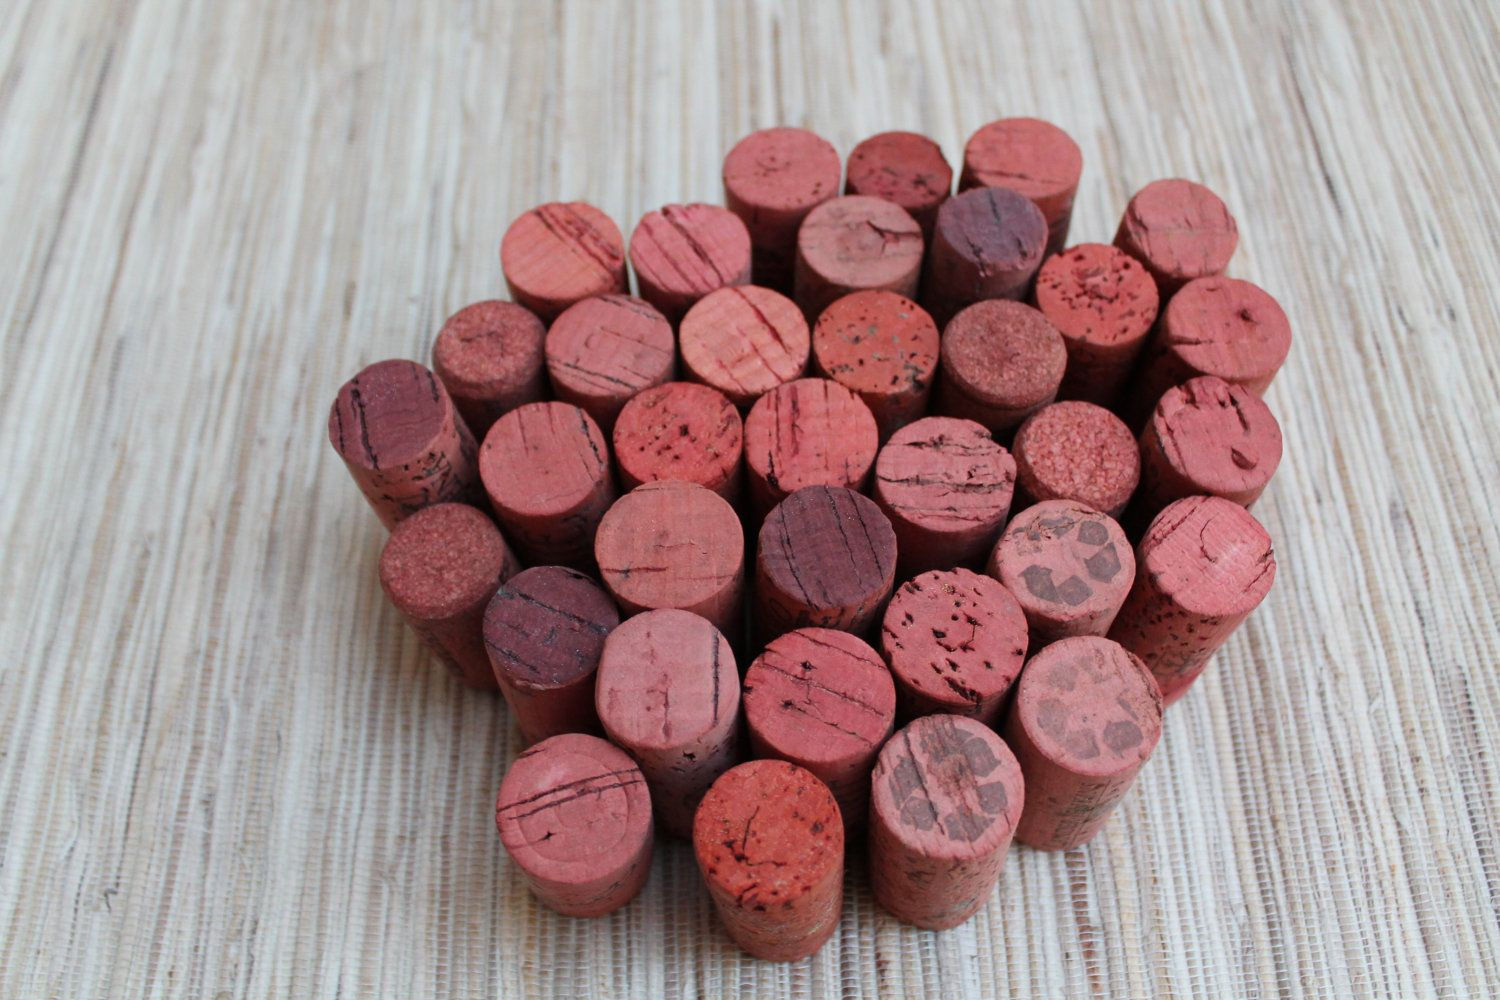 Craft Wine Corks Coral Colored Corks For Crafting Upcycle Craft Diy Wine Corks Supply 9 00 Via Etsy Eco Crafts Diy Wine Crafts